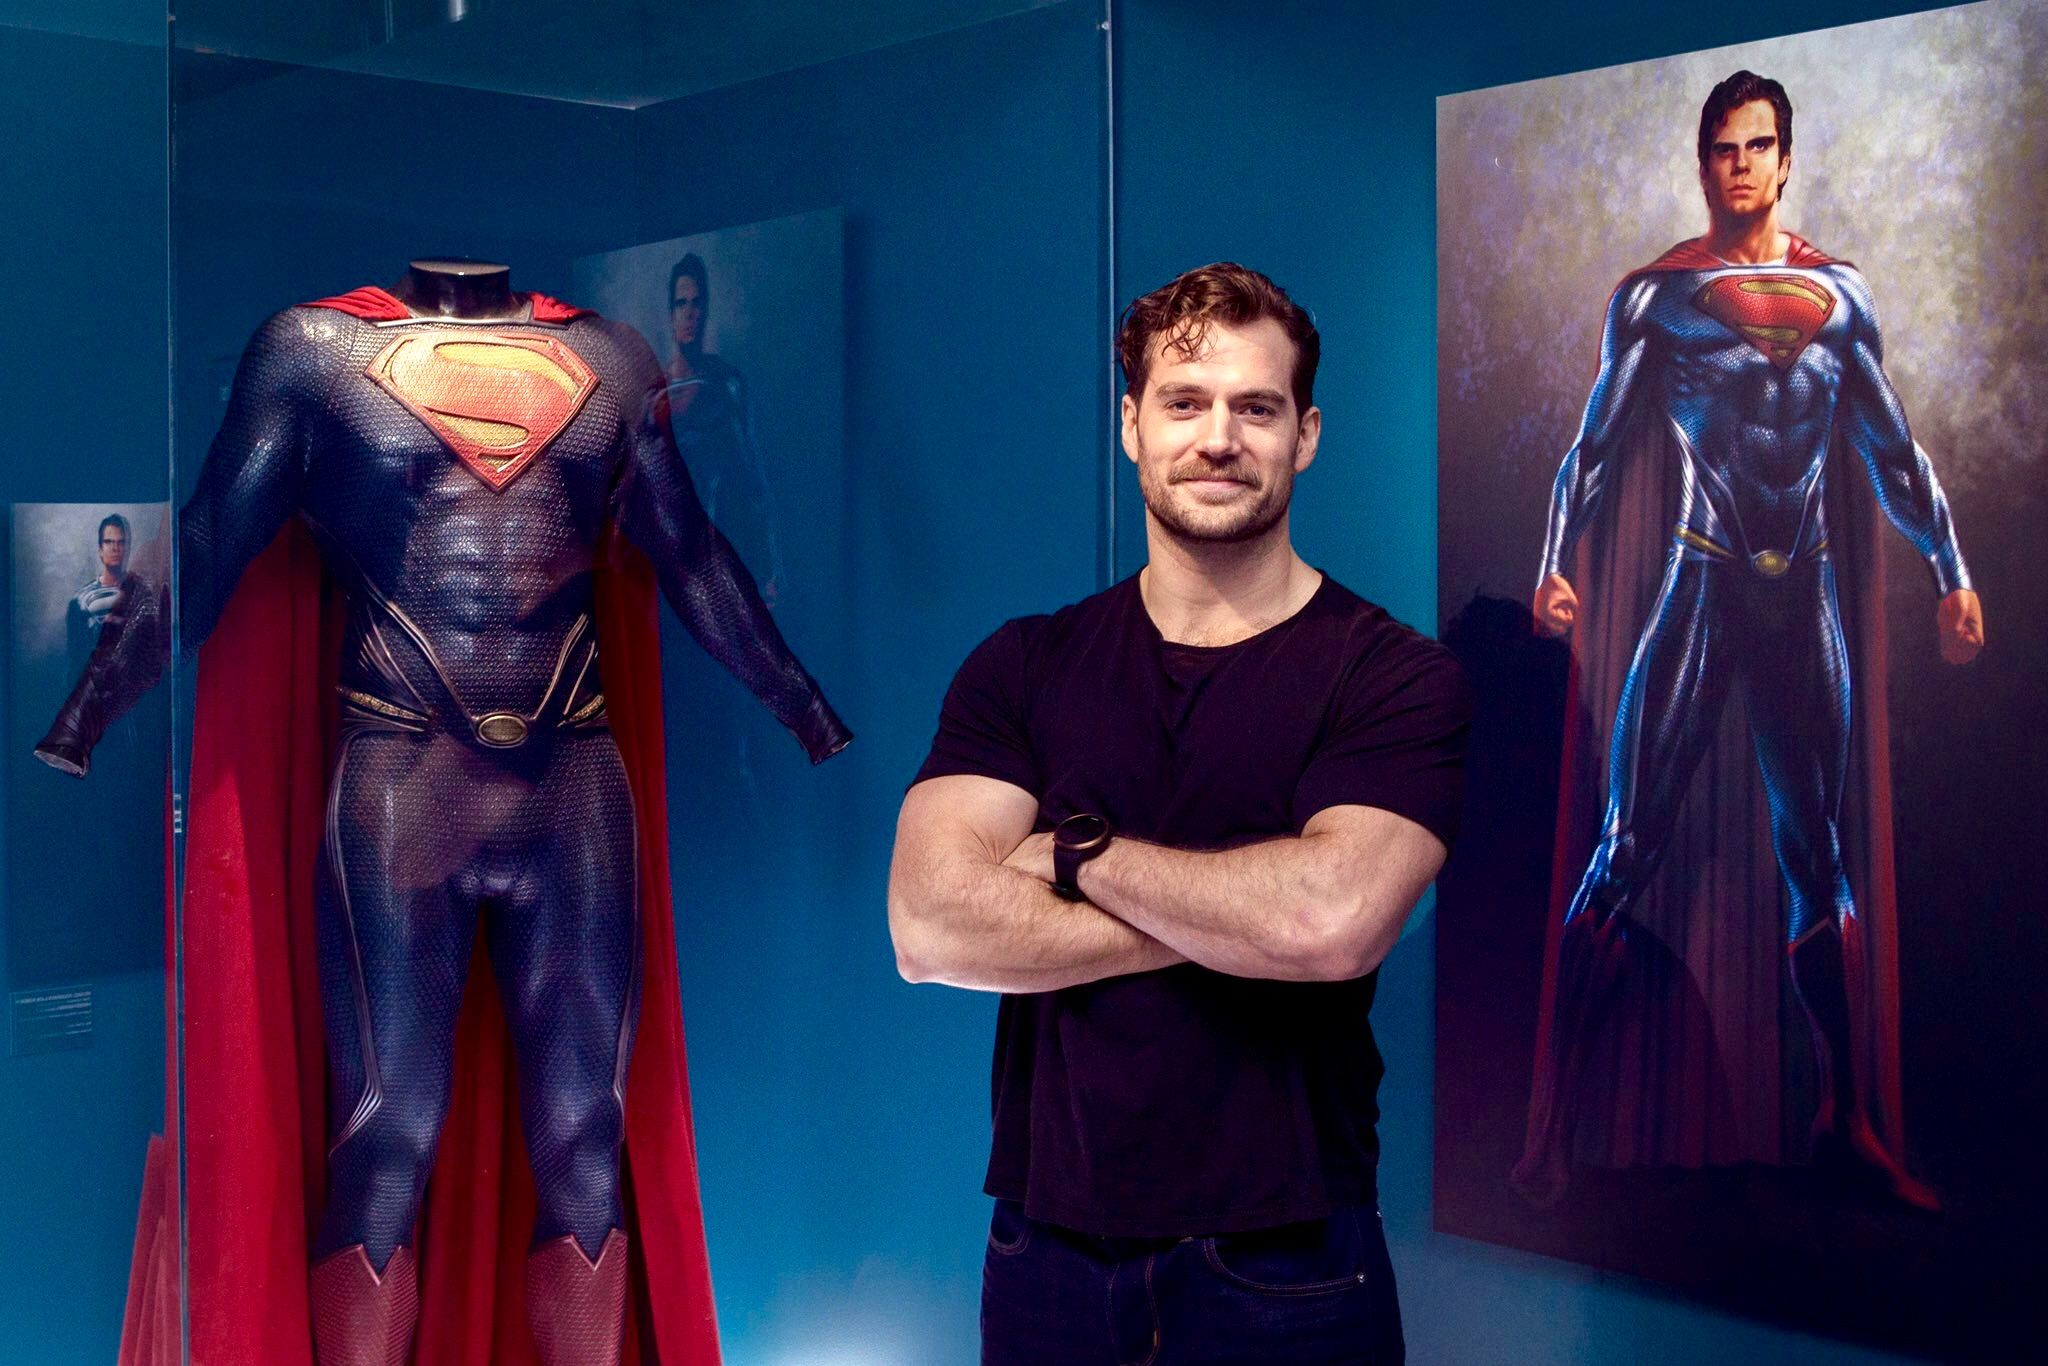 "As the song says ""And these are some of my favorite things tight black form fitting T-shirt, body hugging form fitting super hero costume and you without anything on Cavill""...my version of the song... Billboard 100 here I come...lol!!! ;)"